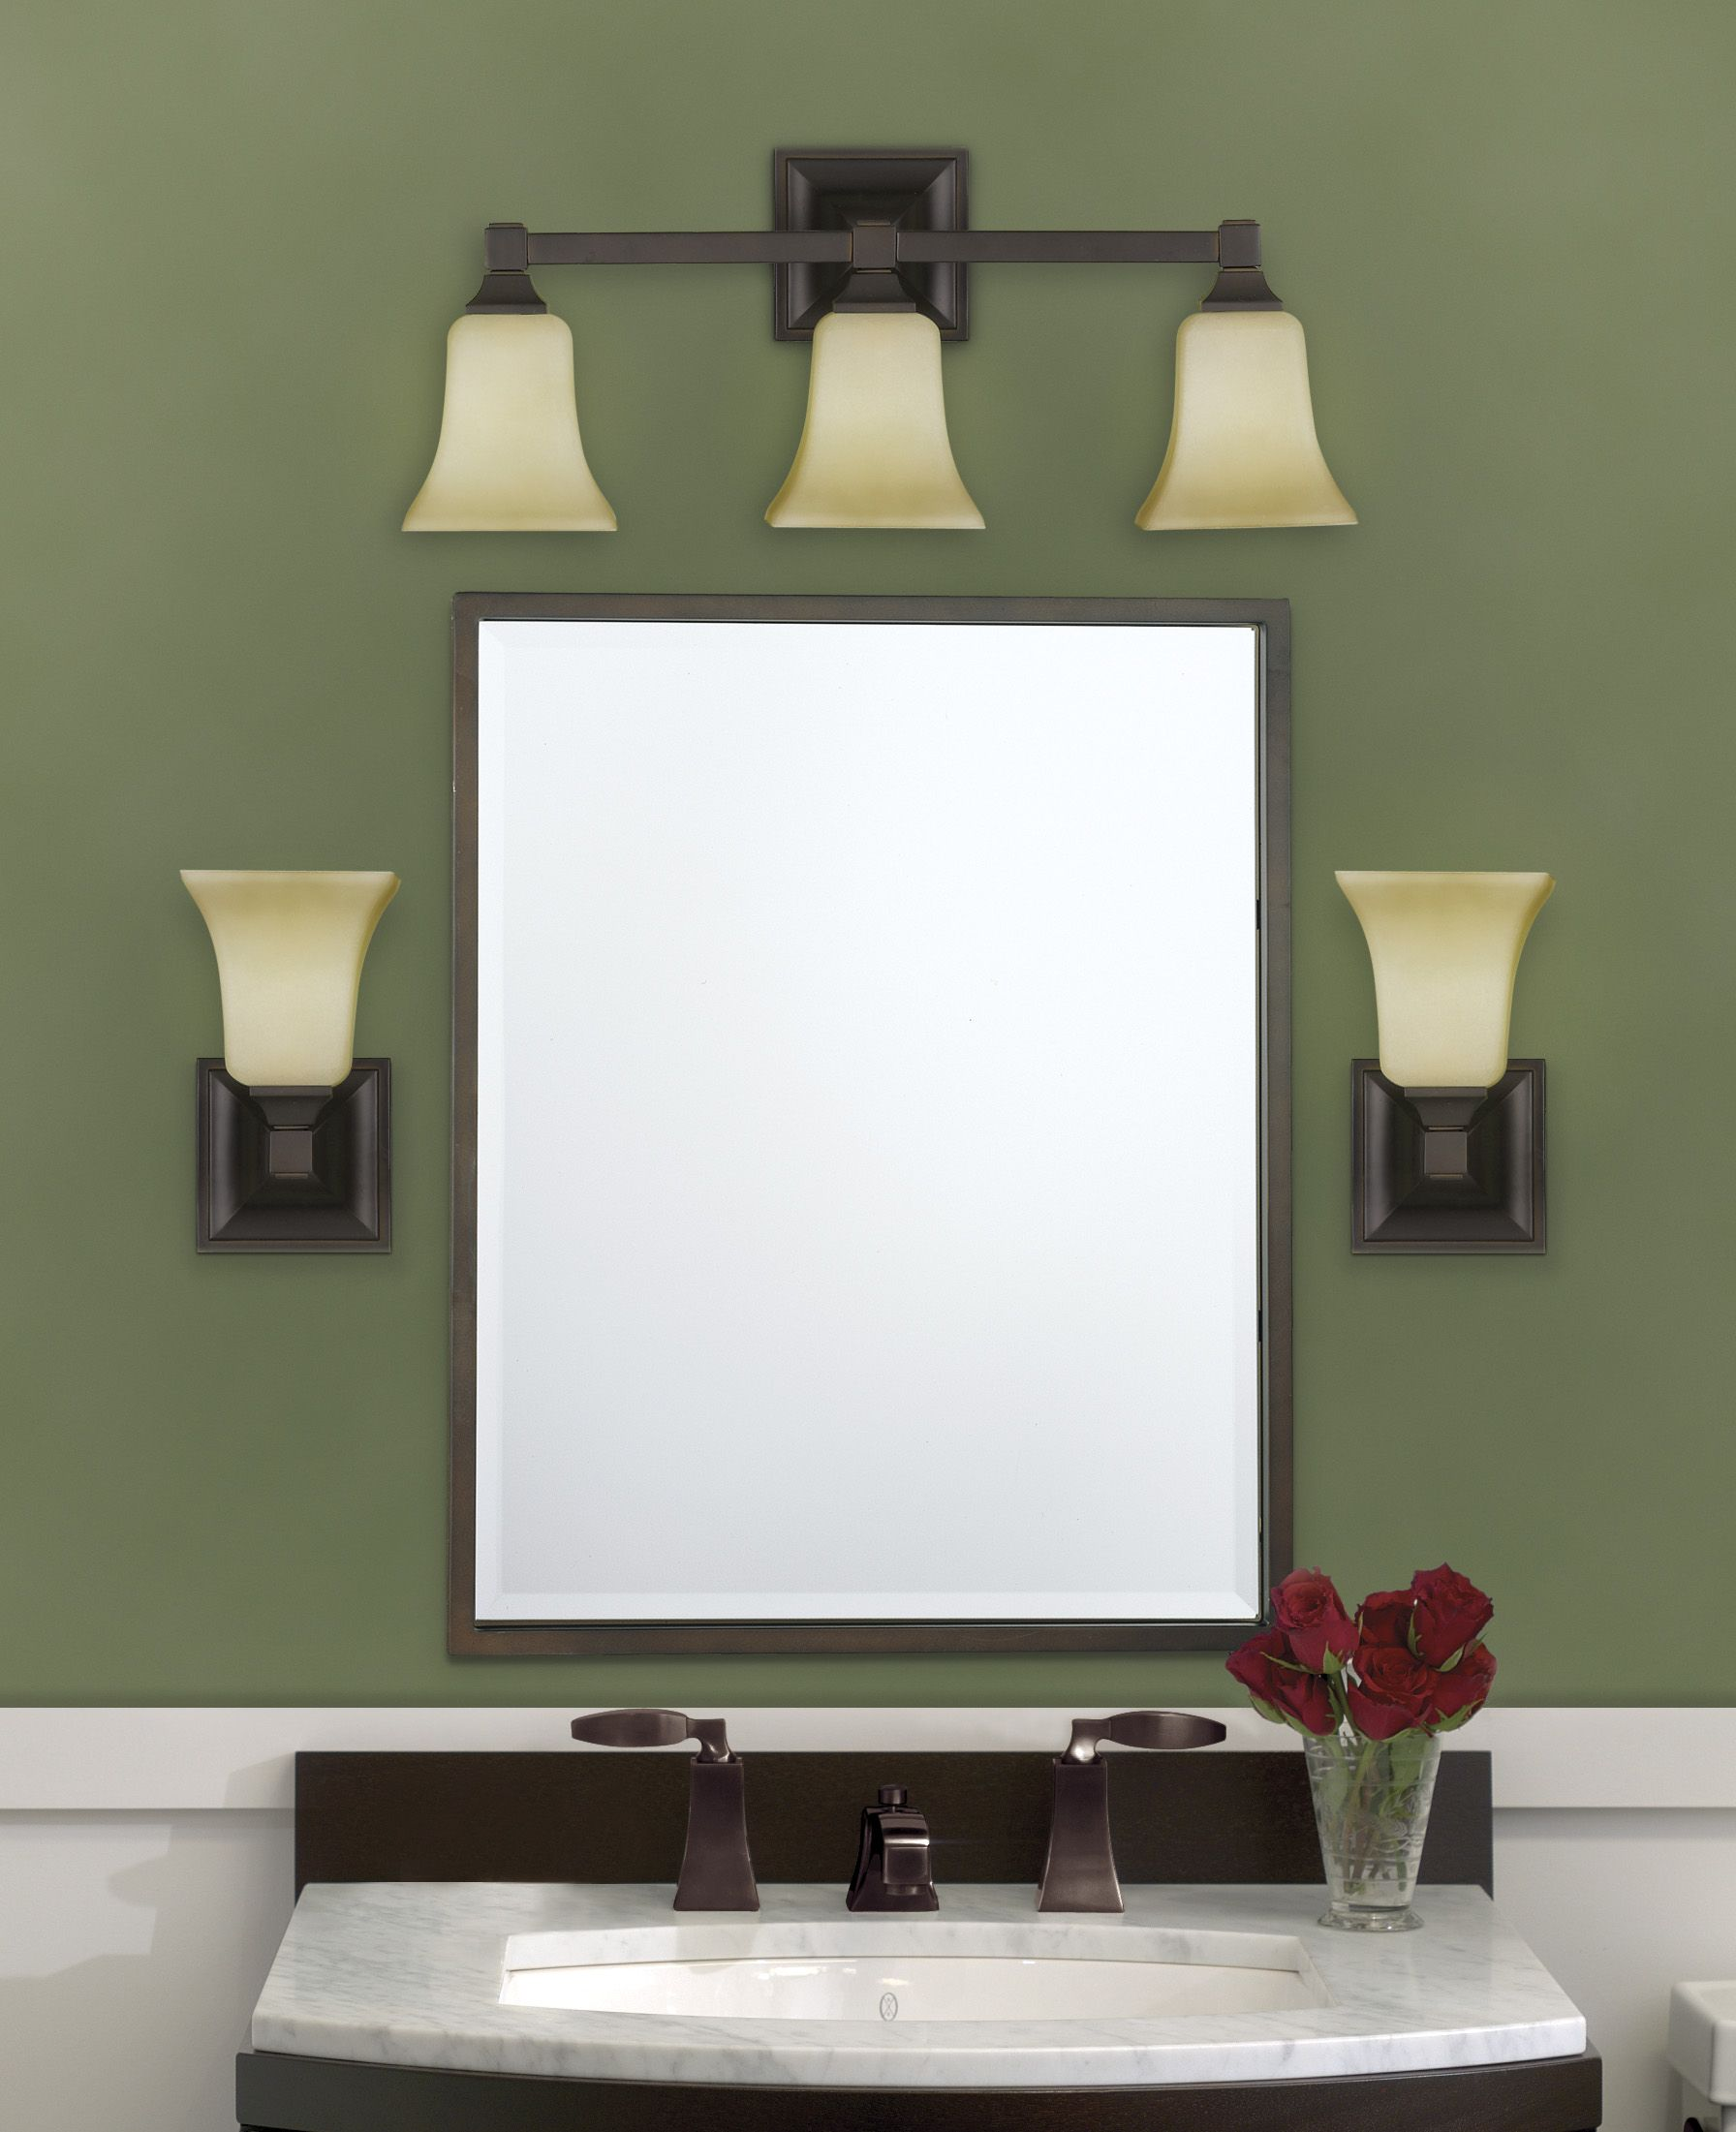 ideal bathroom vanity lighting design ideas. American Foursquare Vanity Light And Wall Sconces From Murray Feiss Lighting Ideal Bathroom Design Ideas